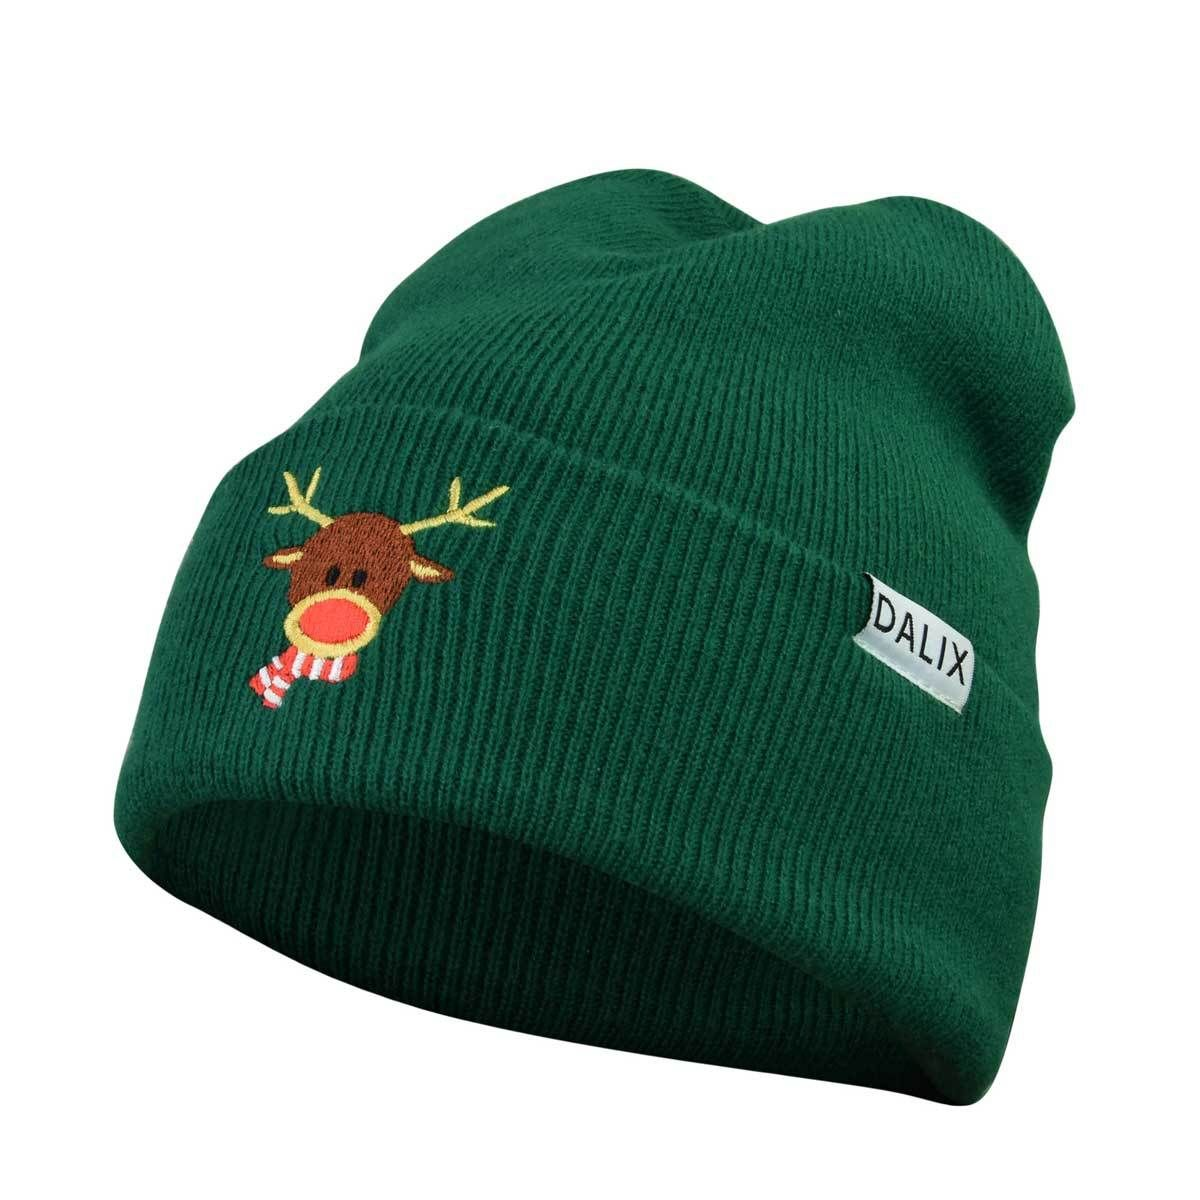 7072ebcd3 Rudolph Beanie Christmas Holiday Winter Stocking Hat in 2019 ...